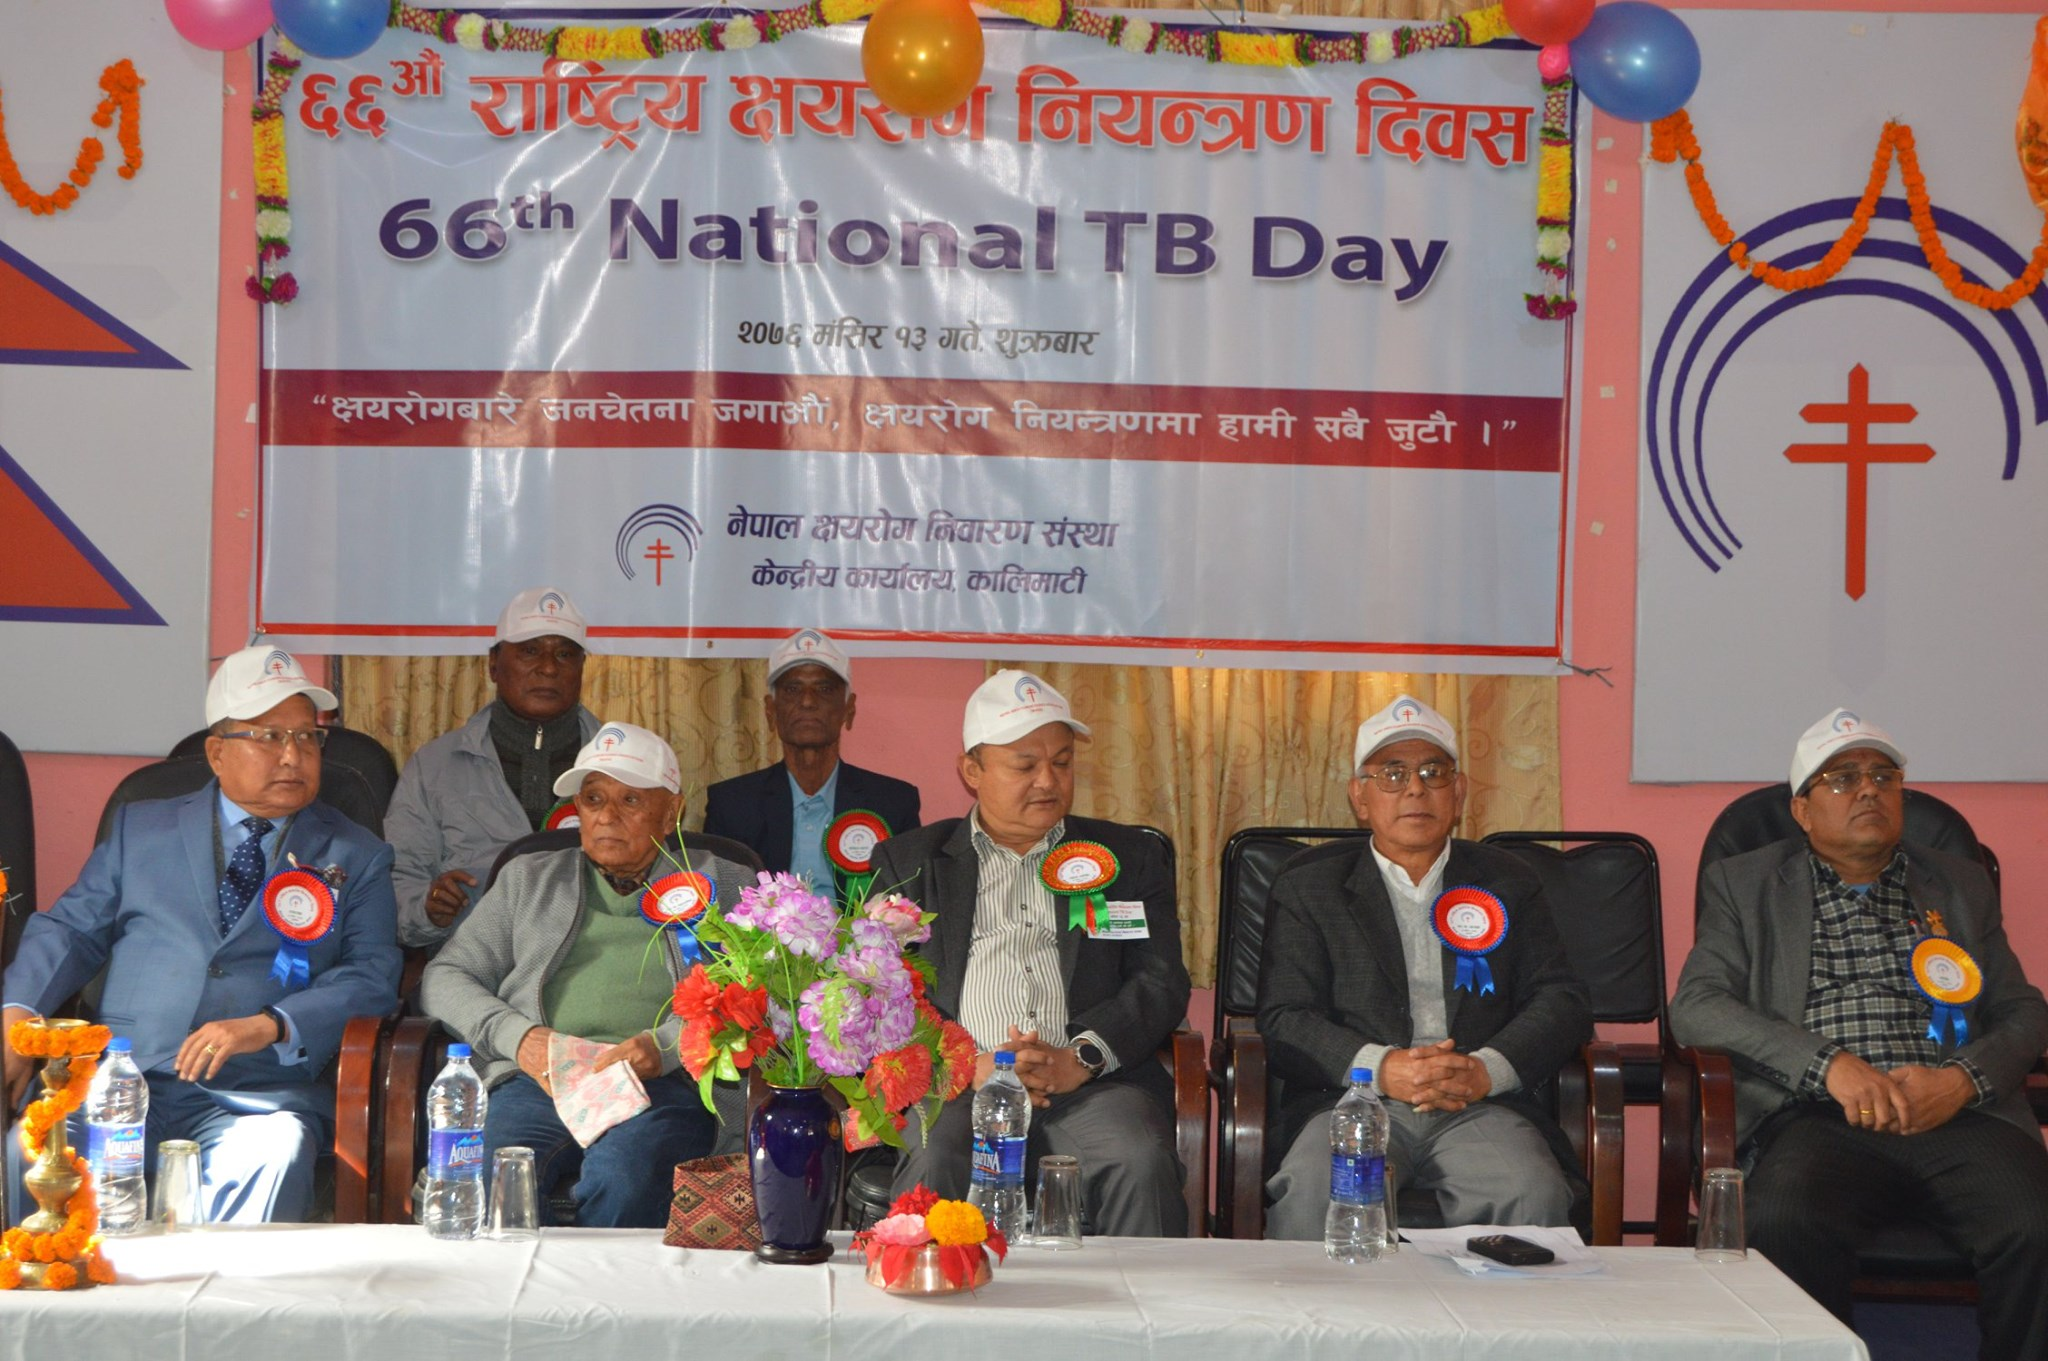 66th National TB day celebration